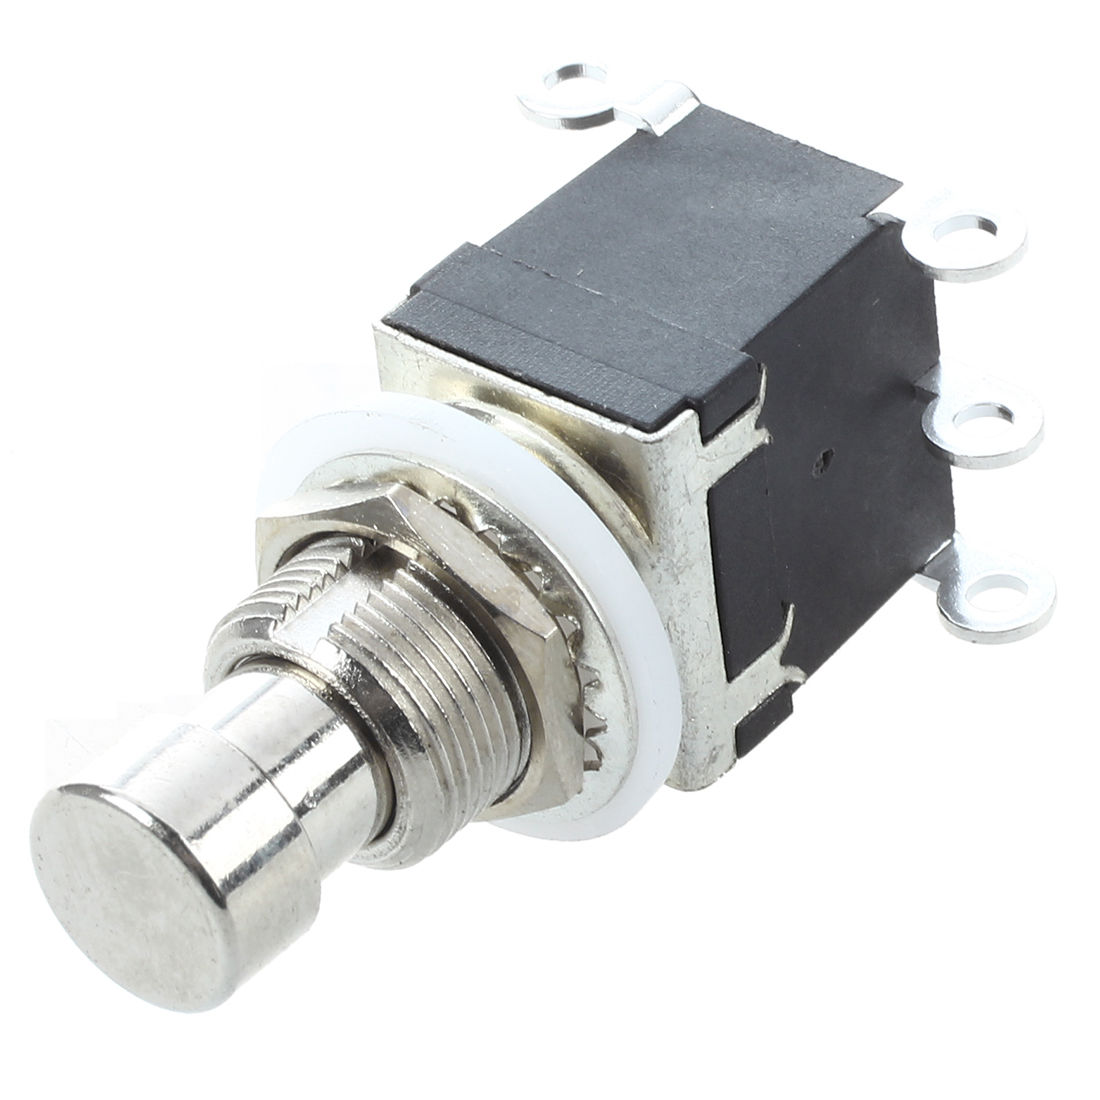 small resolution of aliexpress com buy 6pins dpdt momentary stomp foot switch for guitar ac 250v 2a 125v 4a from reliable switch for guitar suppliers on decorative lifestyle